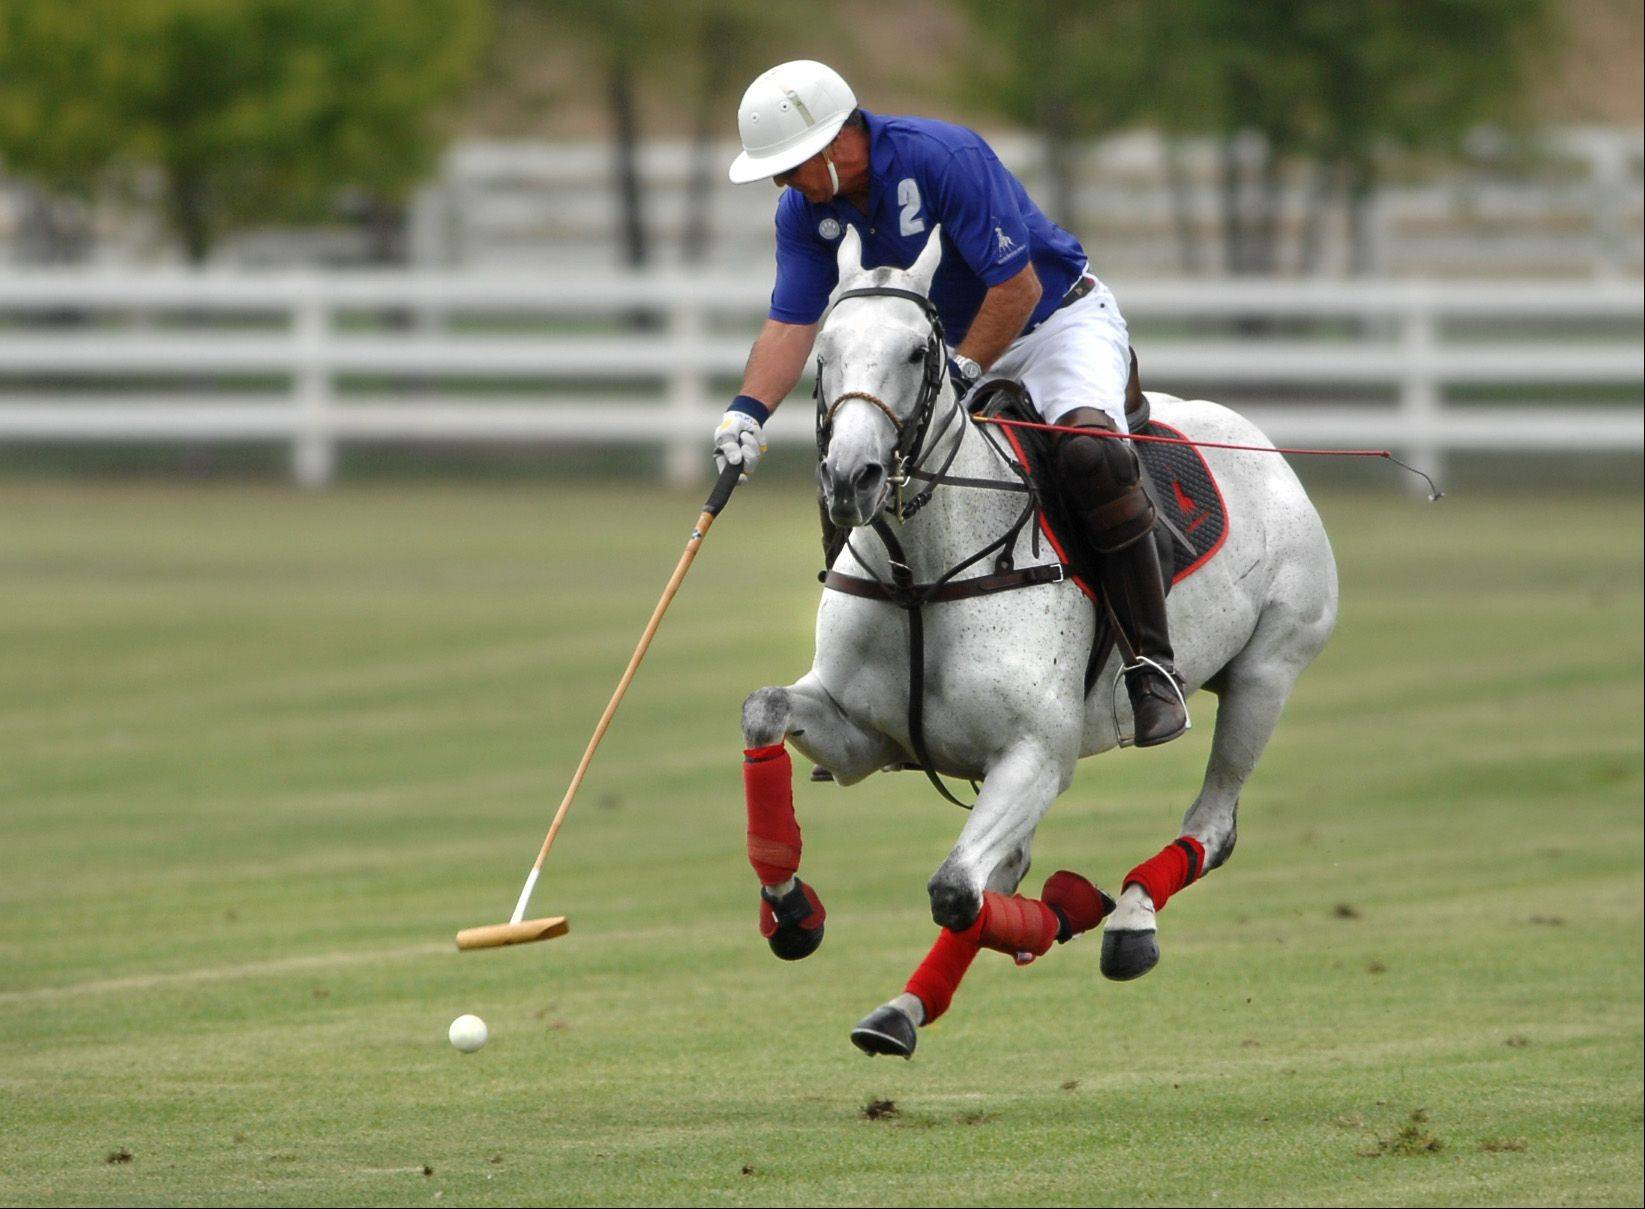 David Wigdahl charges upfield during the second annual Polo for Pets Tailgate Charity Match Sunday at the Dahlwood Polo Farm in Elgin. The match raised money for the Animal House Shelter in Huntley. Wigdahl is the owner of the polo farm.